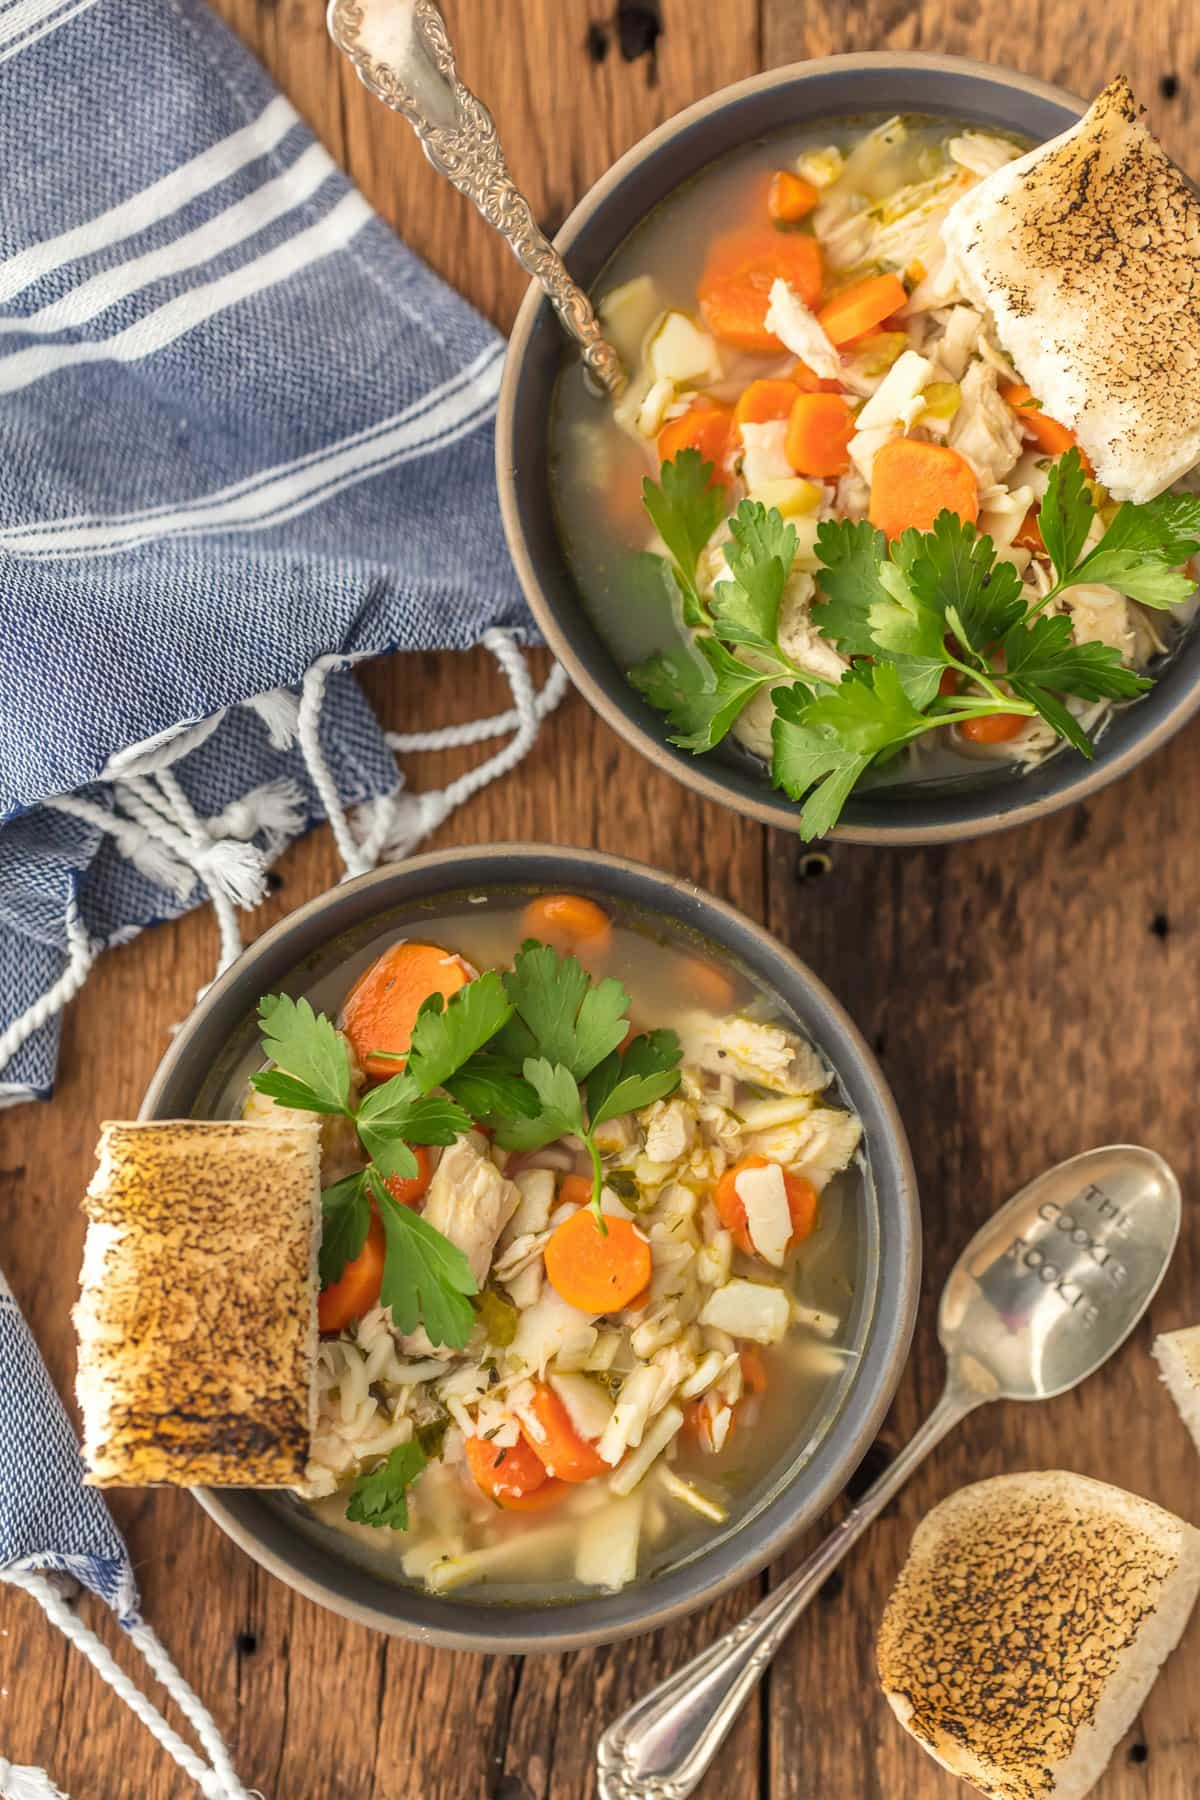 Homemade Chicken Noodle Soup | The Cookie Rookie